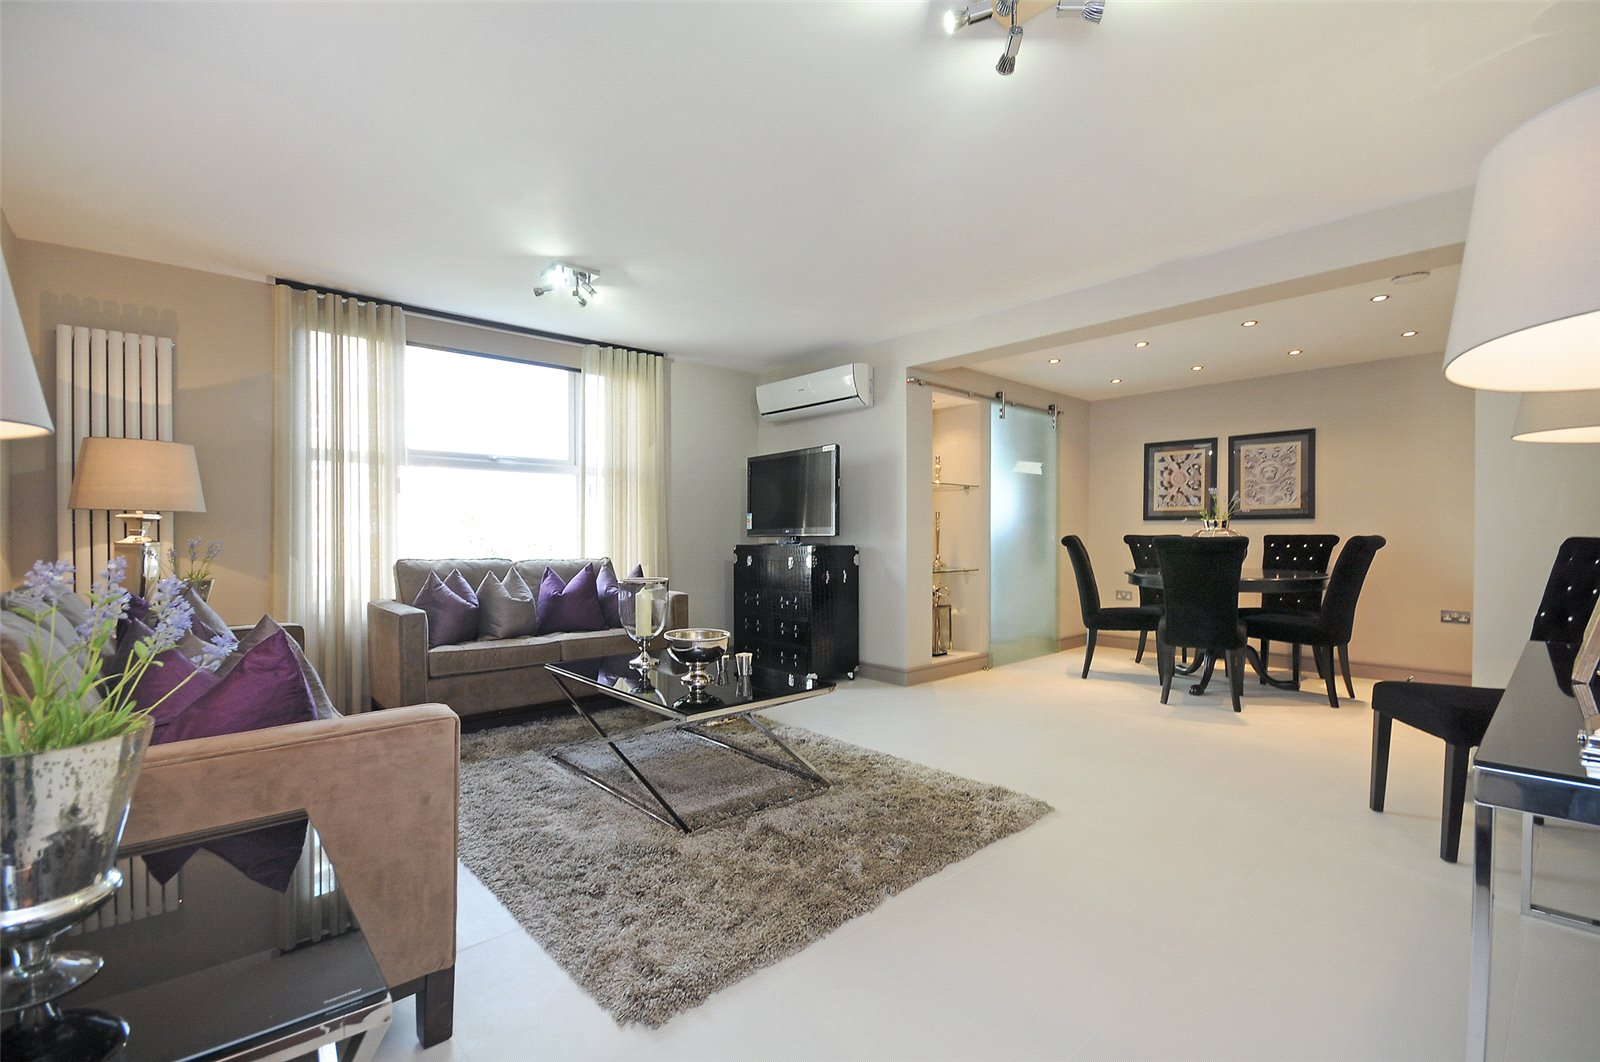 Apartment for Rent at St John's Wood Park, St John's Wood, London, NW8 St John's Wood Park, St John's Wood, London, NW8